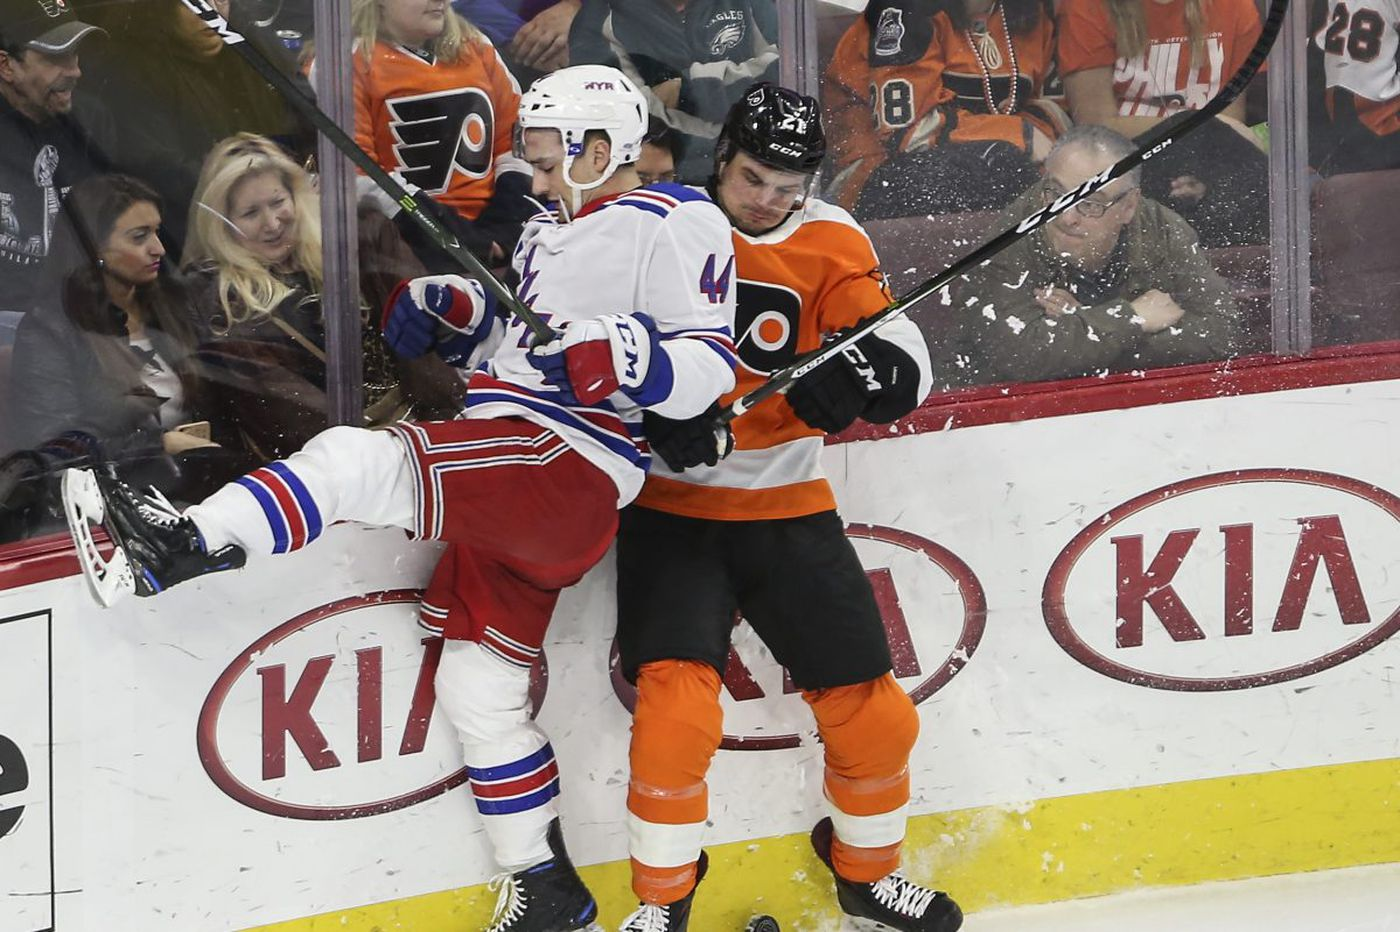 Flyers-Rangers preview: For Philly, a playoff spot is there for the taking